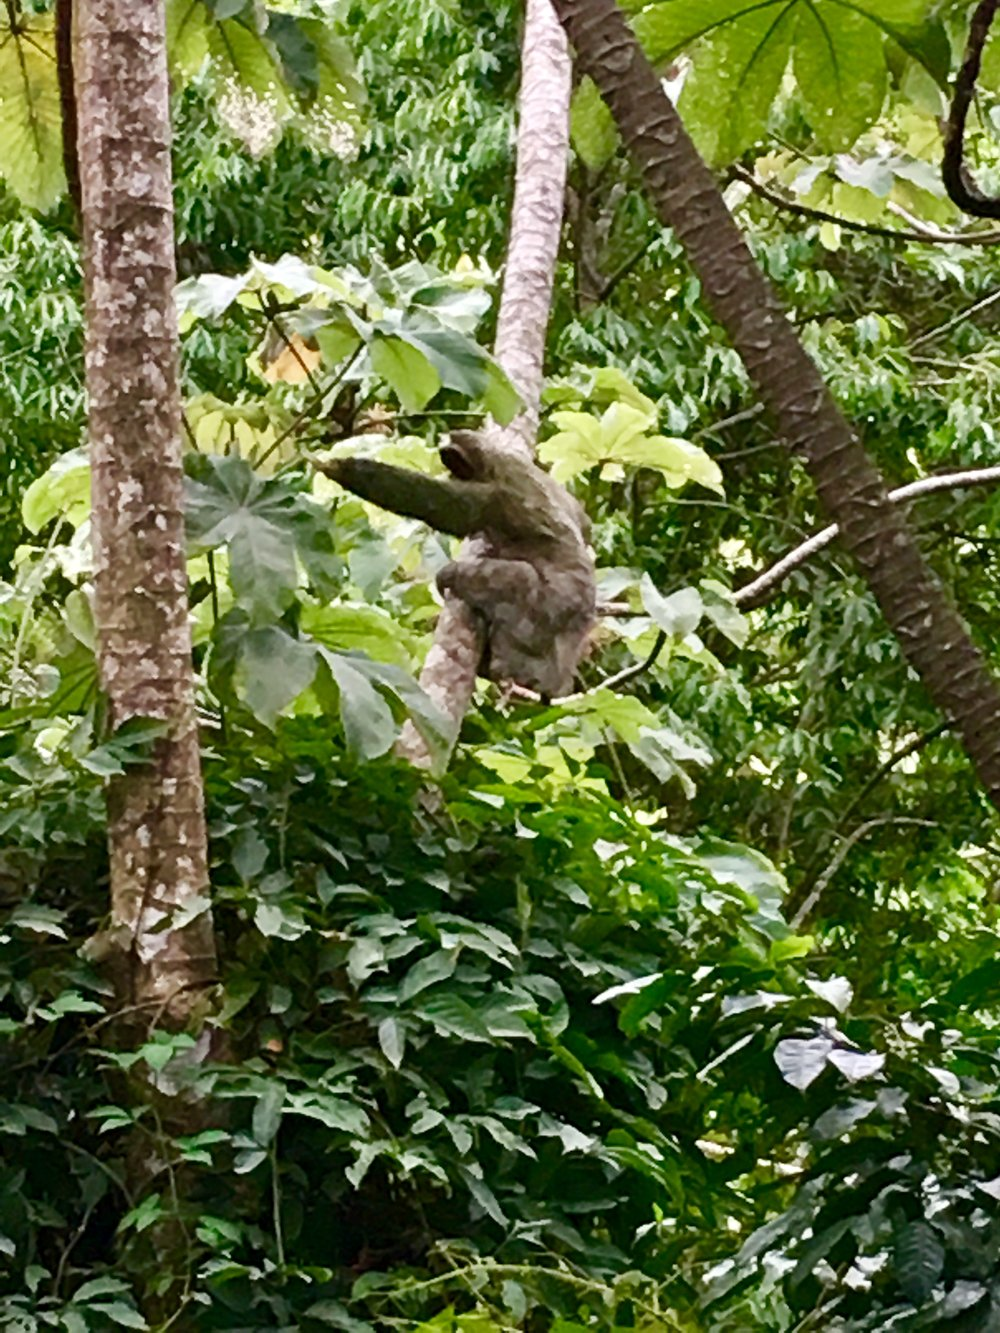 Two-toed sloth out of back deck